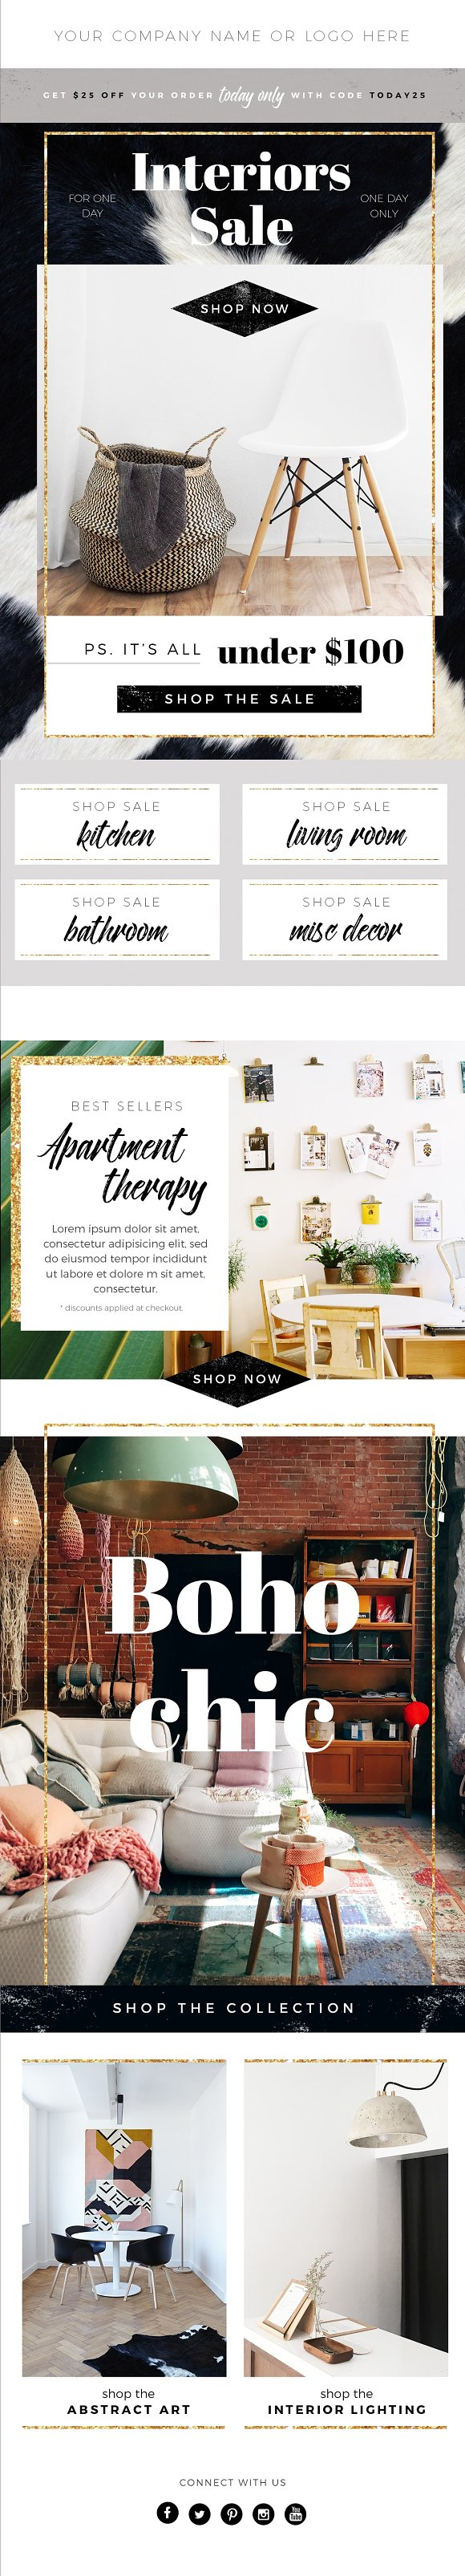 Boho Email Template Psd Interiors Email Templates Creative Market